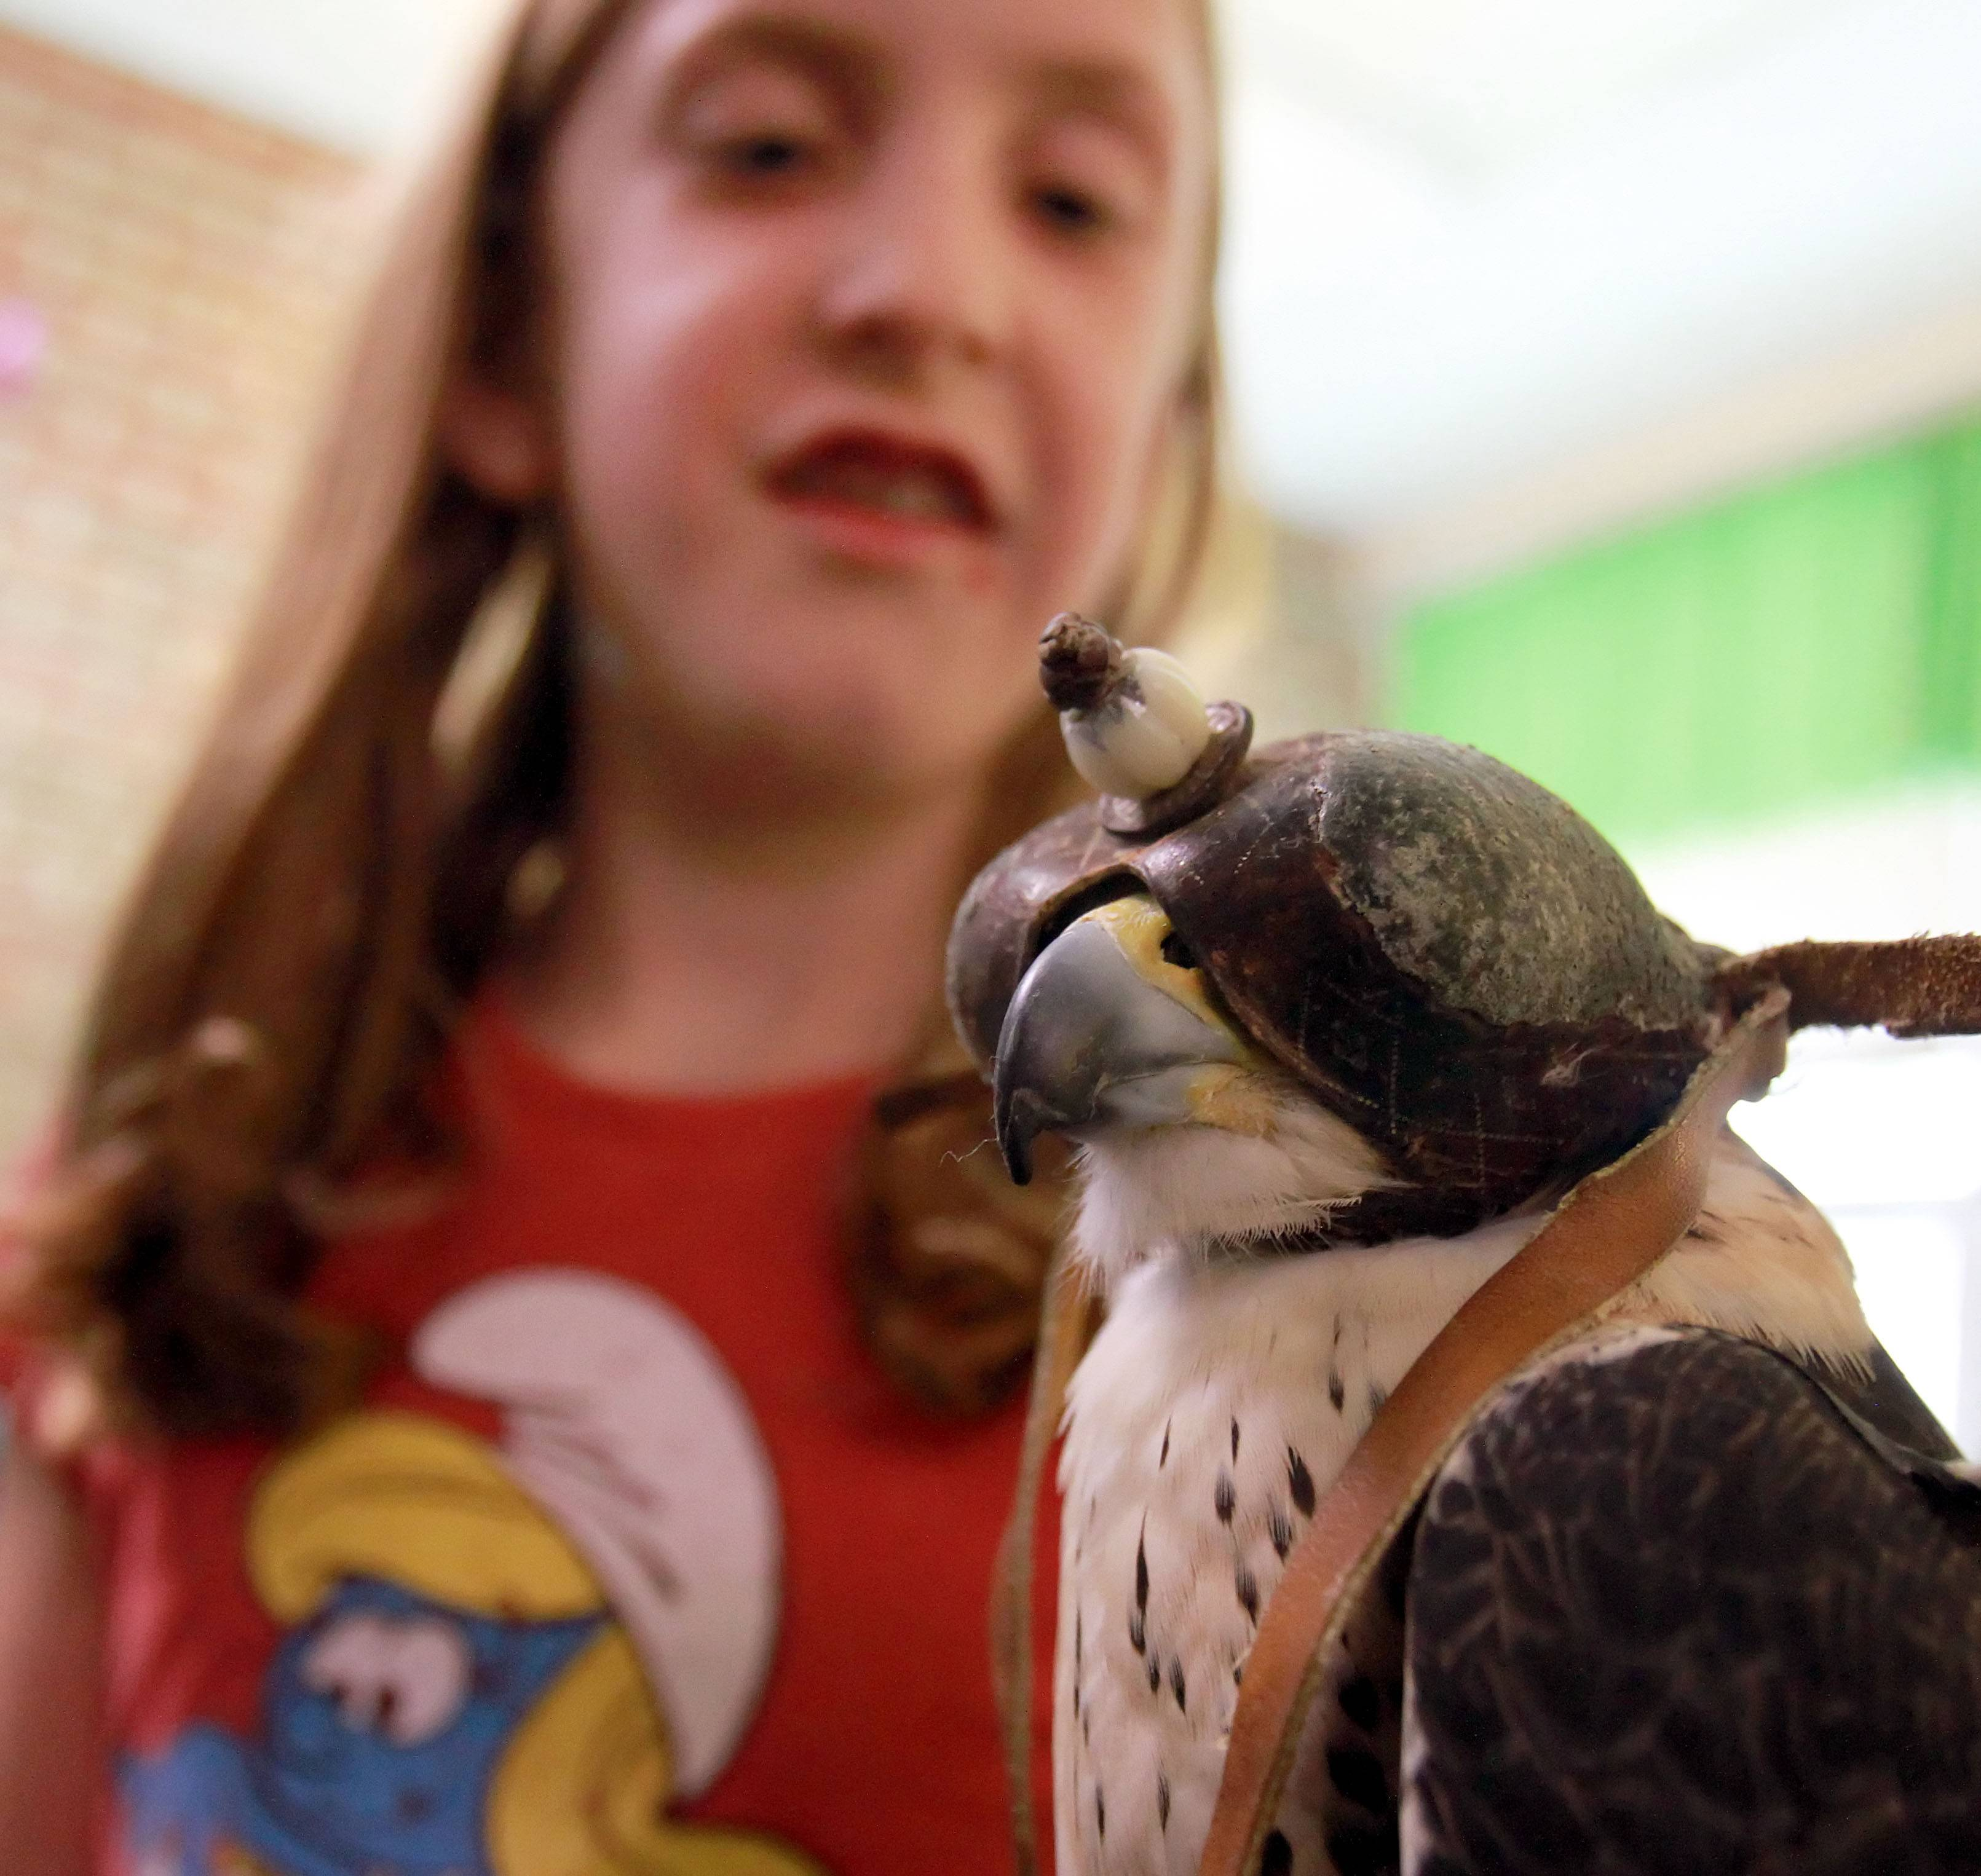 Rockland School third grader Emily Coughlin holds Alvin, a peregrine falcon, during a visit from Craig Hendee, director of the International Heritage Conservancy, in Libertyville Friday.